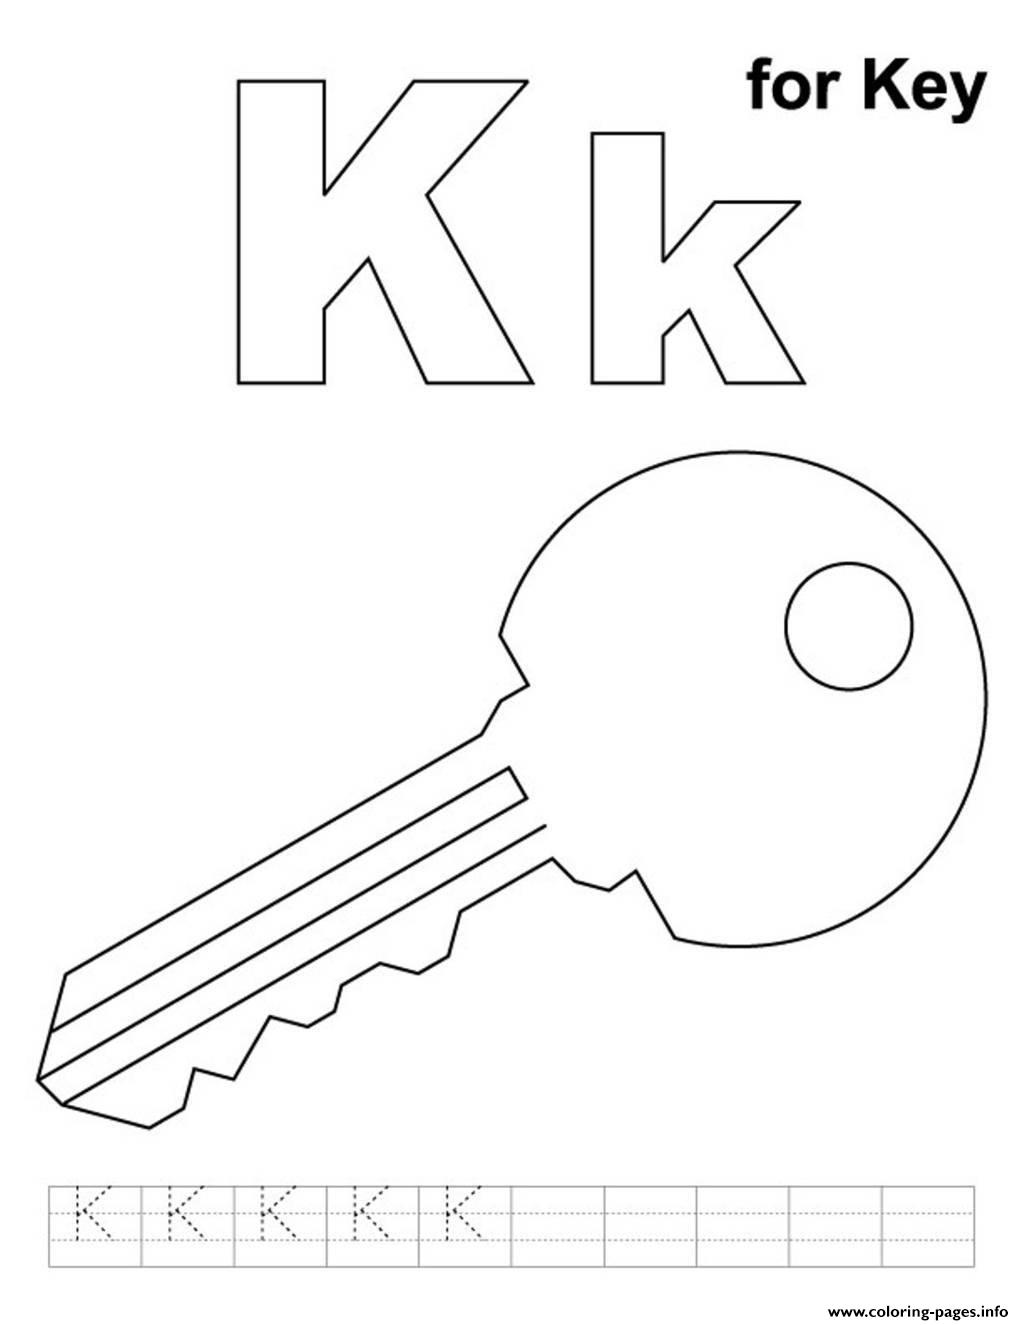 Key Alphabet S Freeff51 Coloring Pages Printable